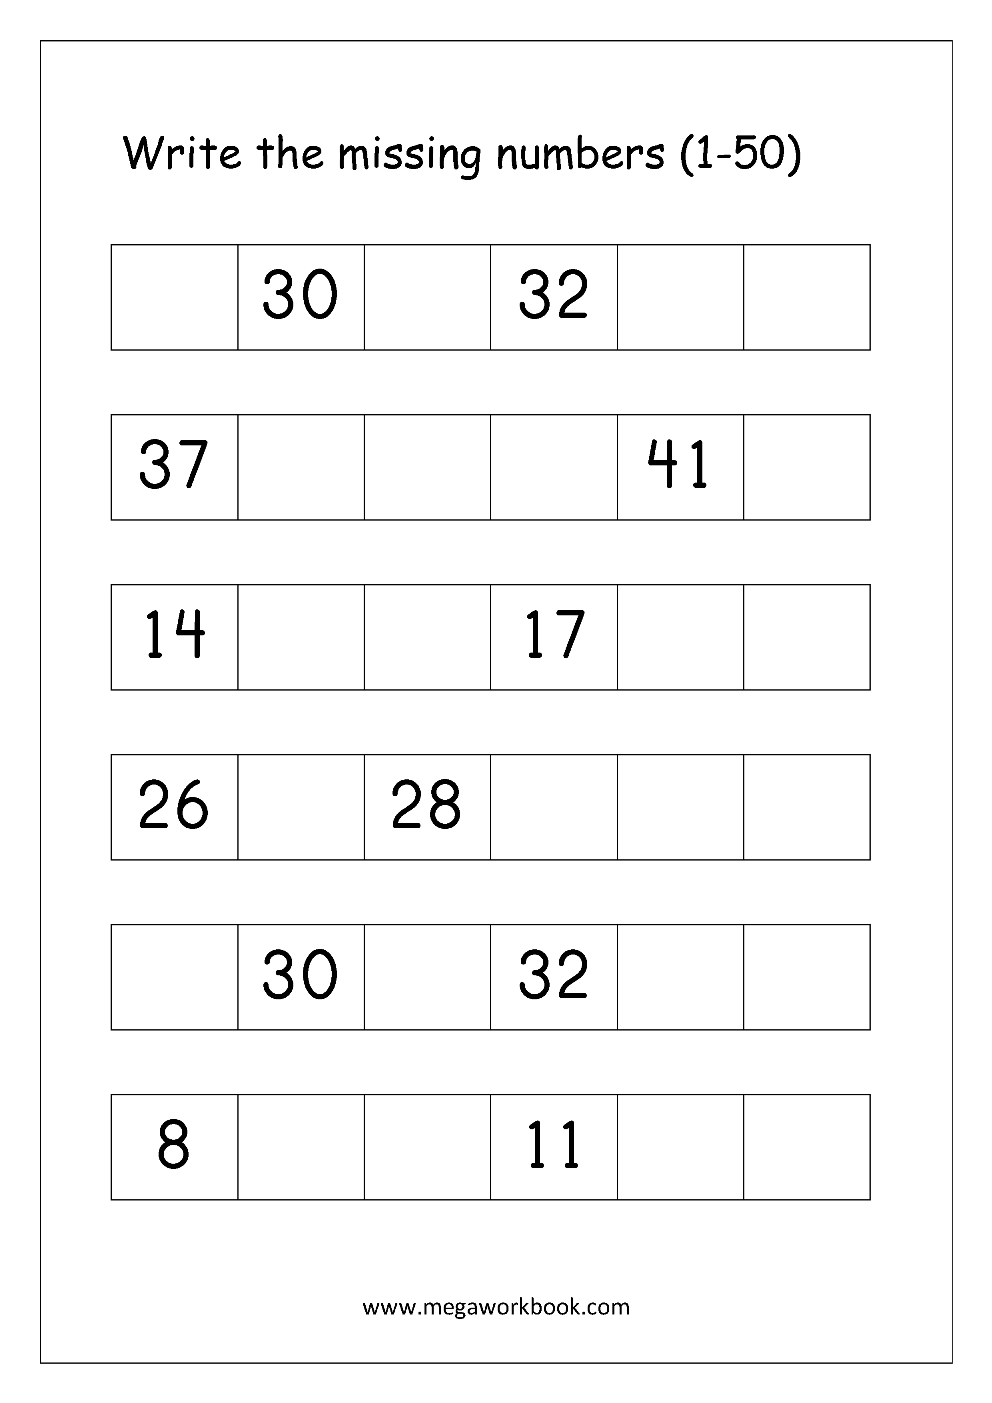 Free Printable Number Order Worksheets - Missing Numbers (1-10, 1-20 ...